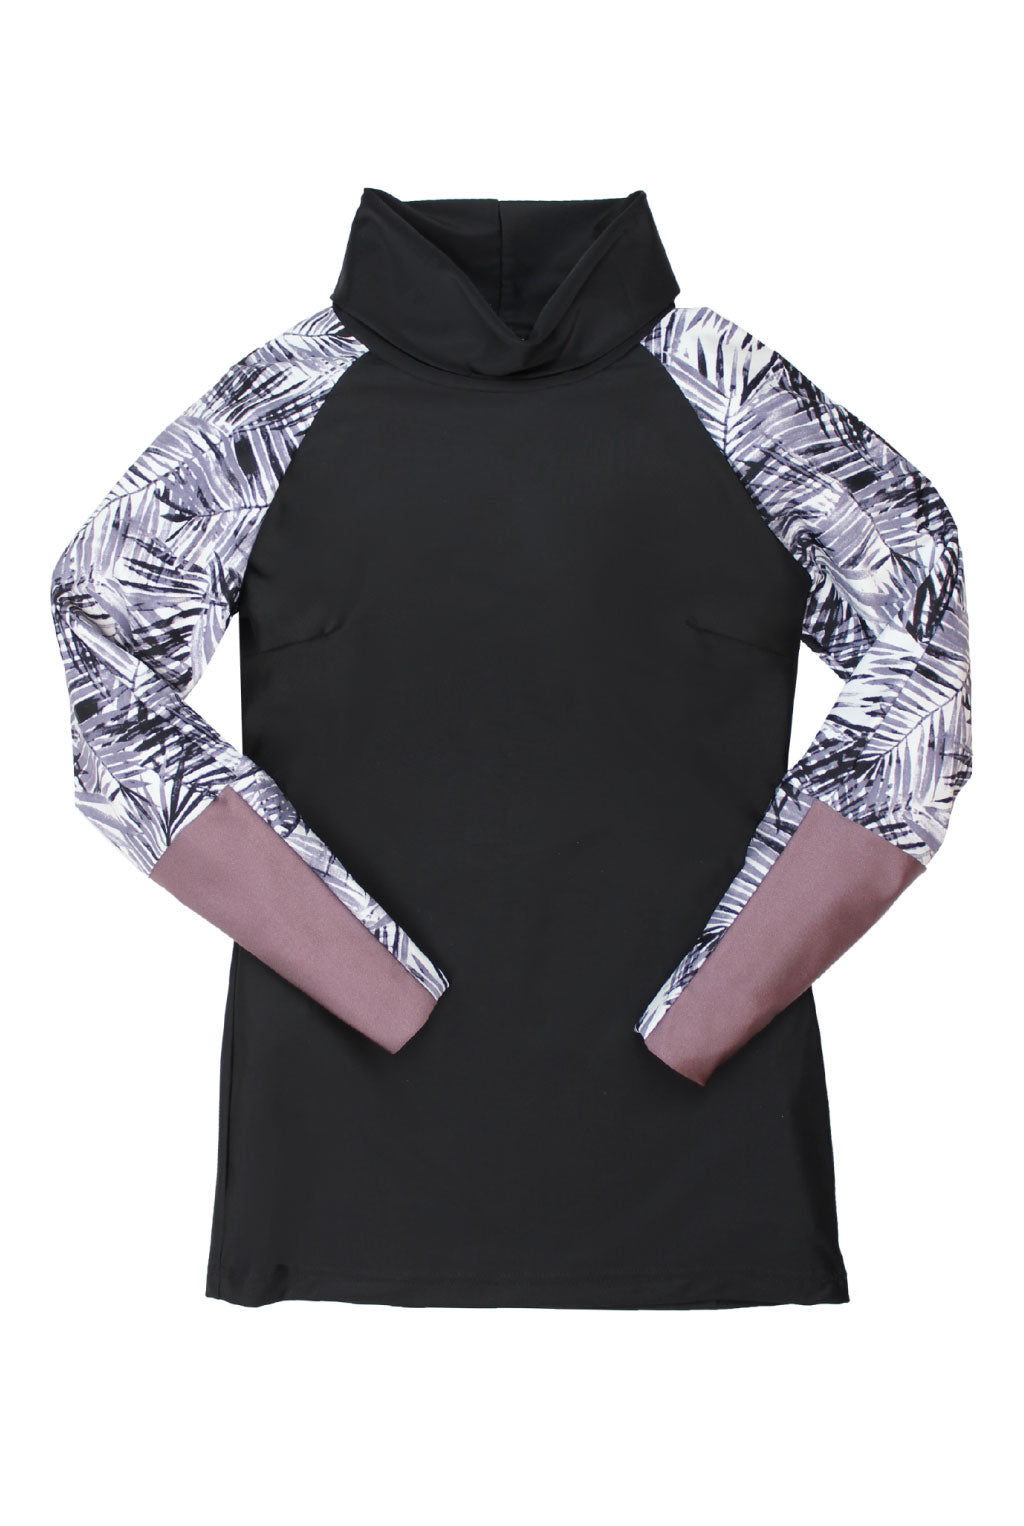 The Mazu Rash Guard in Black Palm